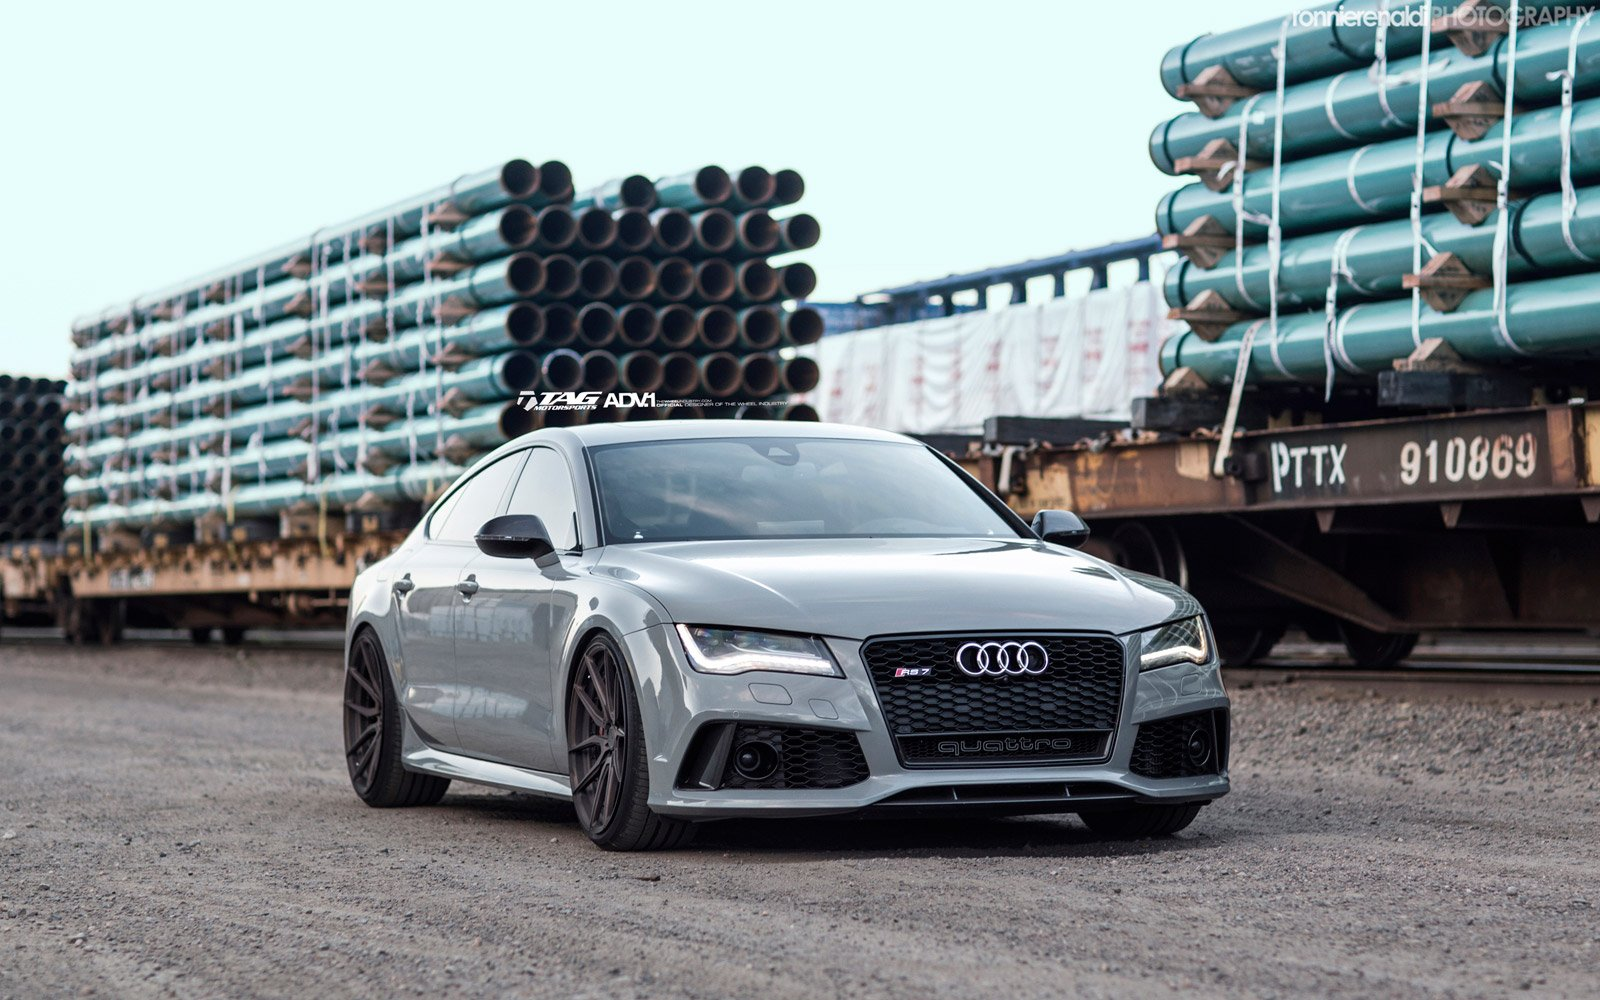 Audi Rs7 Nardo Grey Best Car News 2019 2020 By Firstrateameric